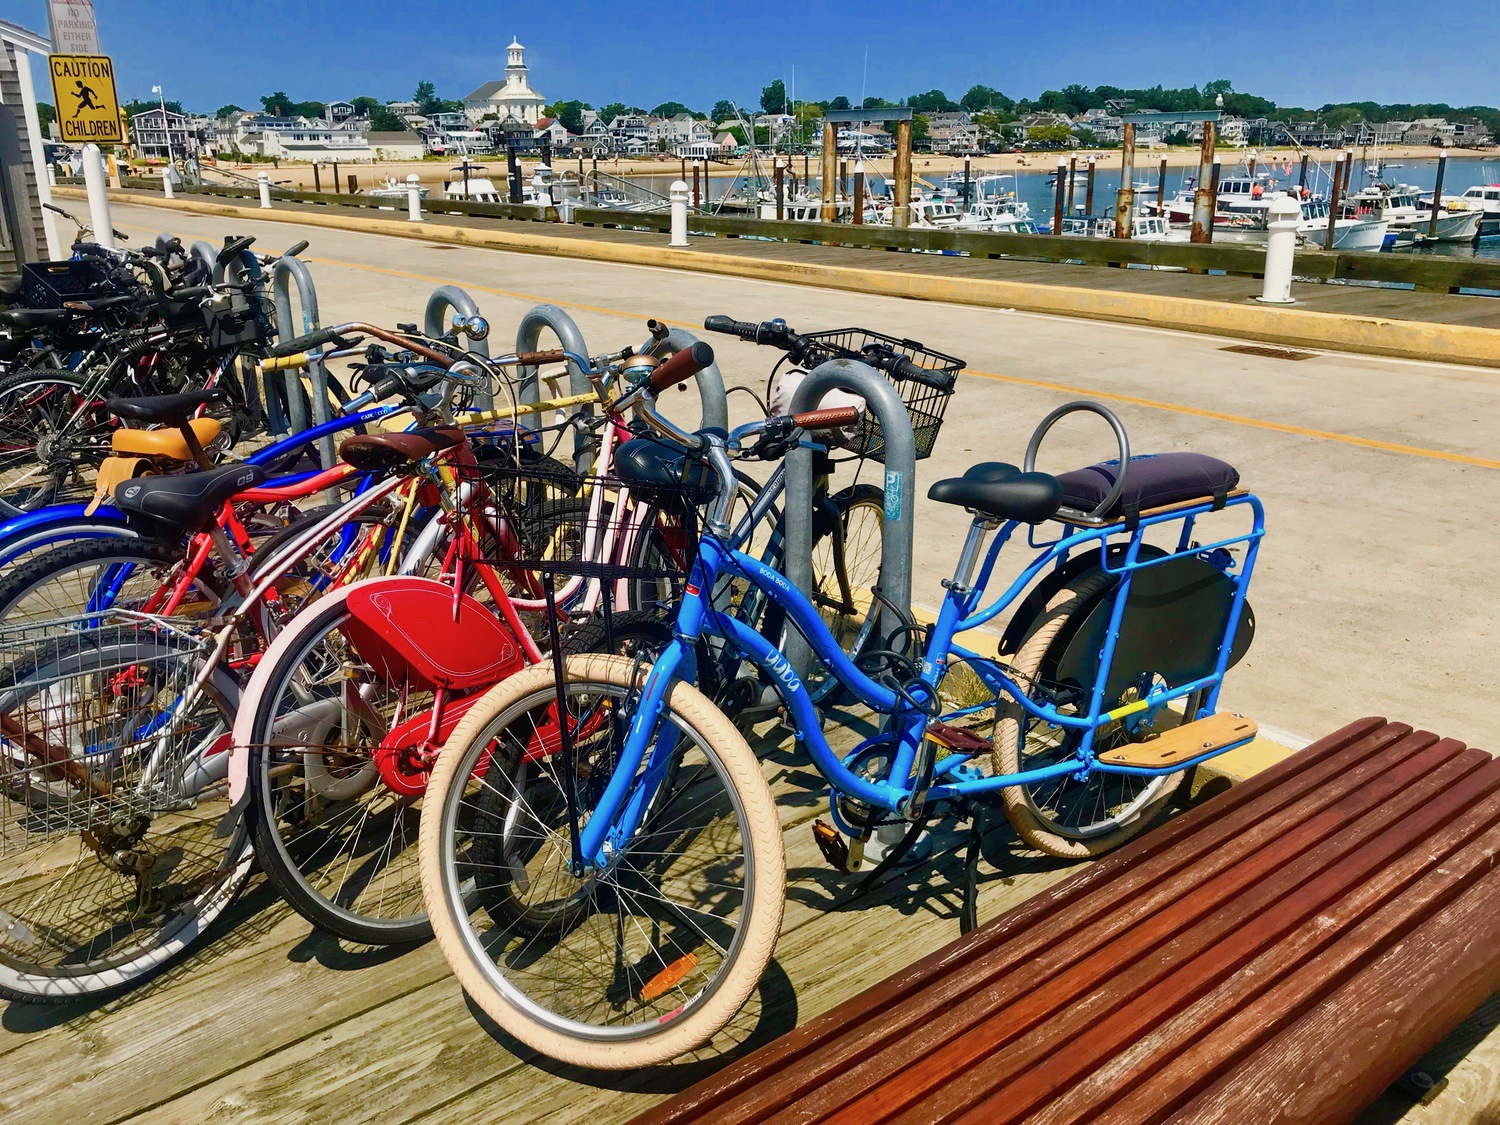 "Provincetown is a ""biker's paradise"" according to WalkScore, and I want to help make your experience riding in town the best it can be."